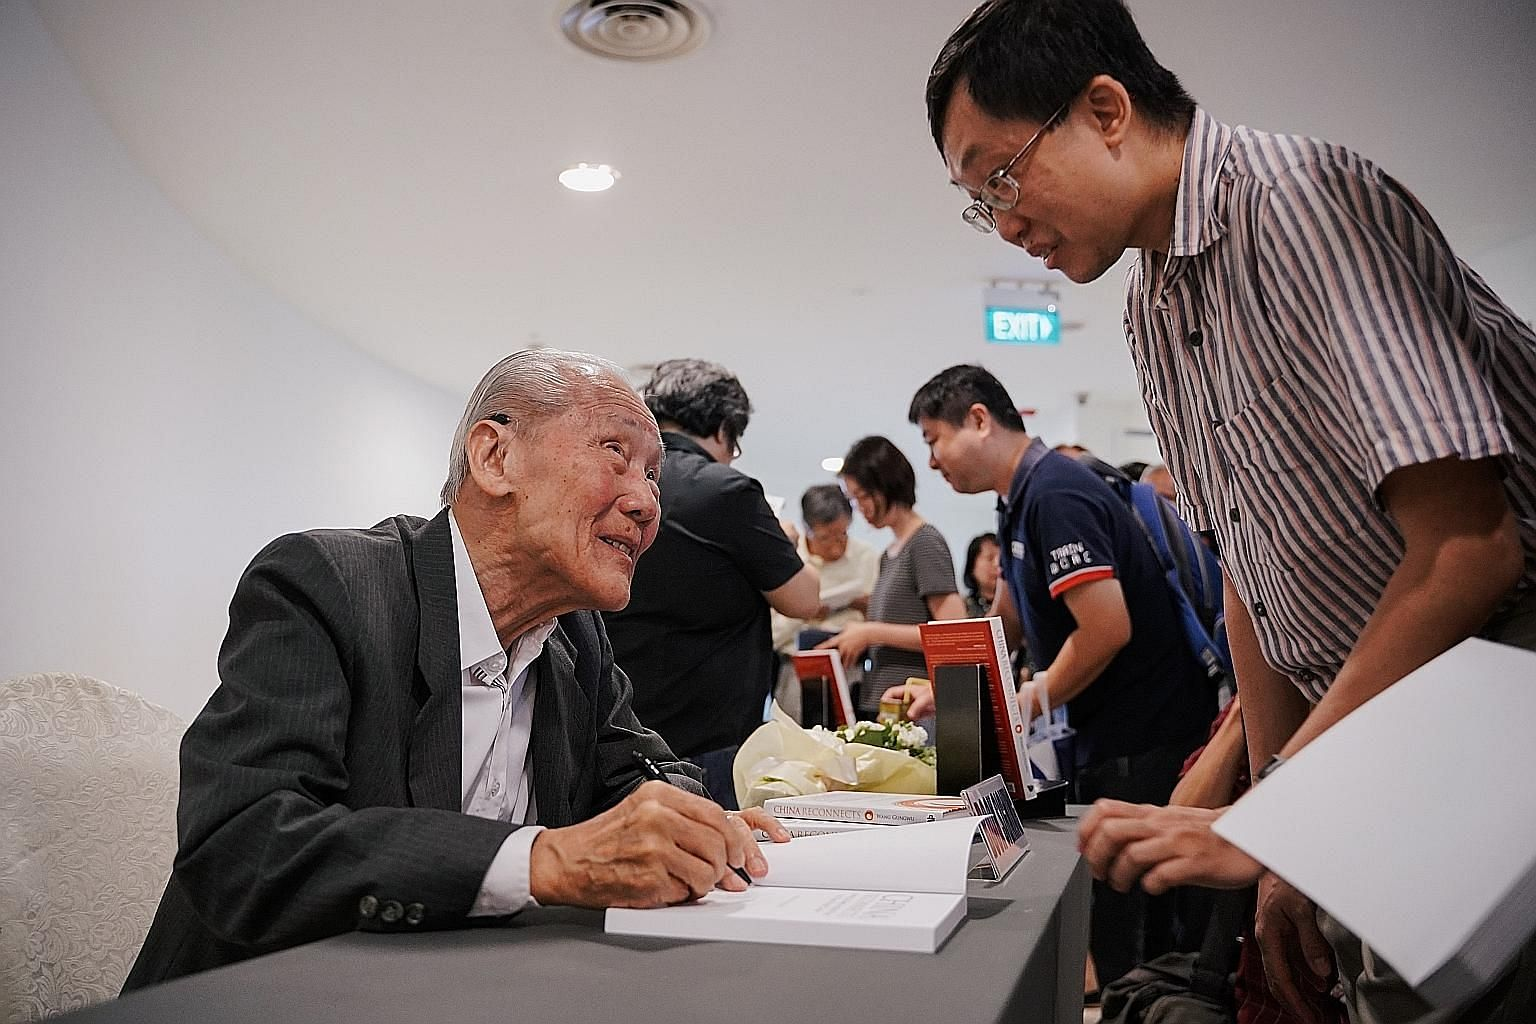 Historian Wang Gungwu at the launch of his book, China Reconnects: Joining A Deep-rooted Past To A New World Order, yesterday. Ambassador-at-Large Chan Heng Chee spoke at the event. ST PHOTO: ONG WEE KIAT